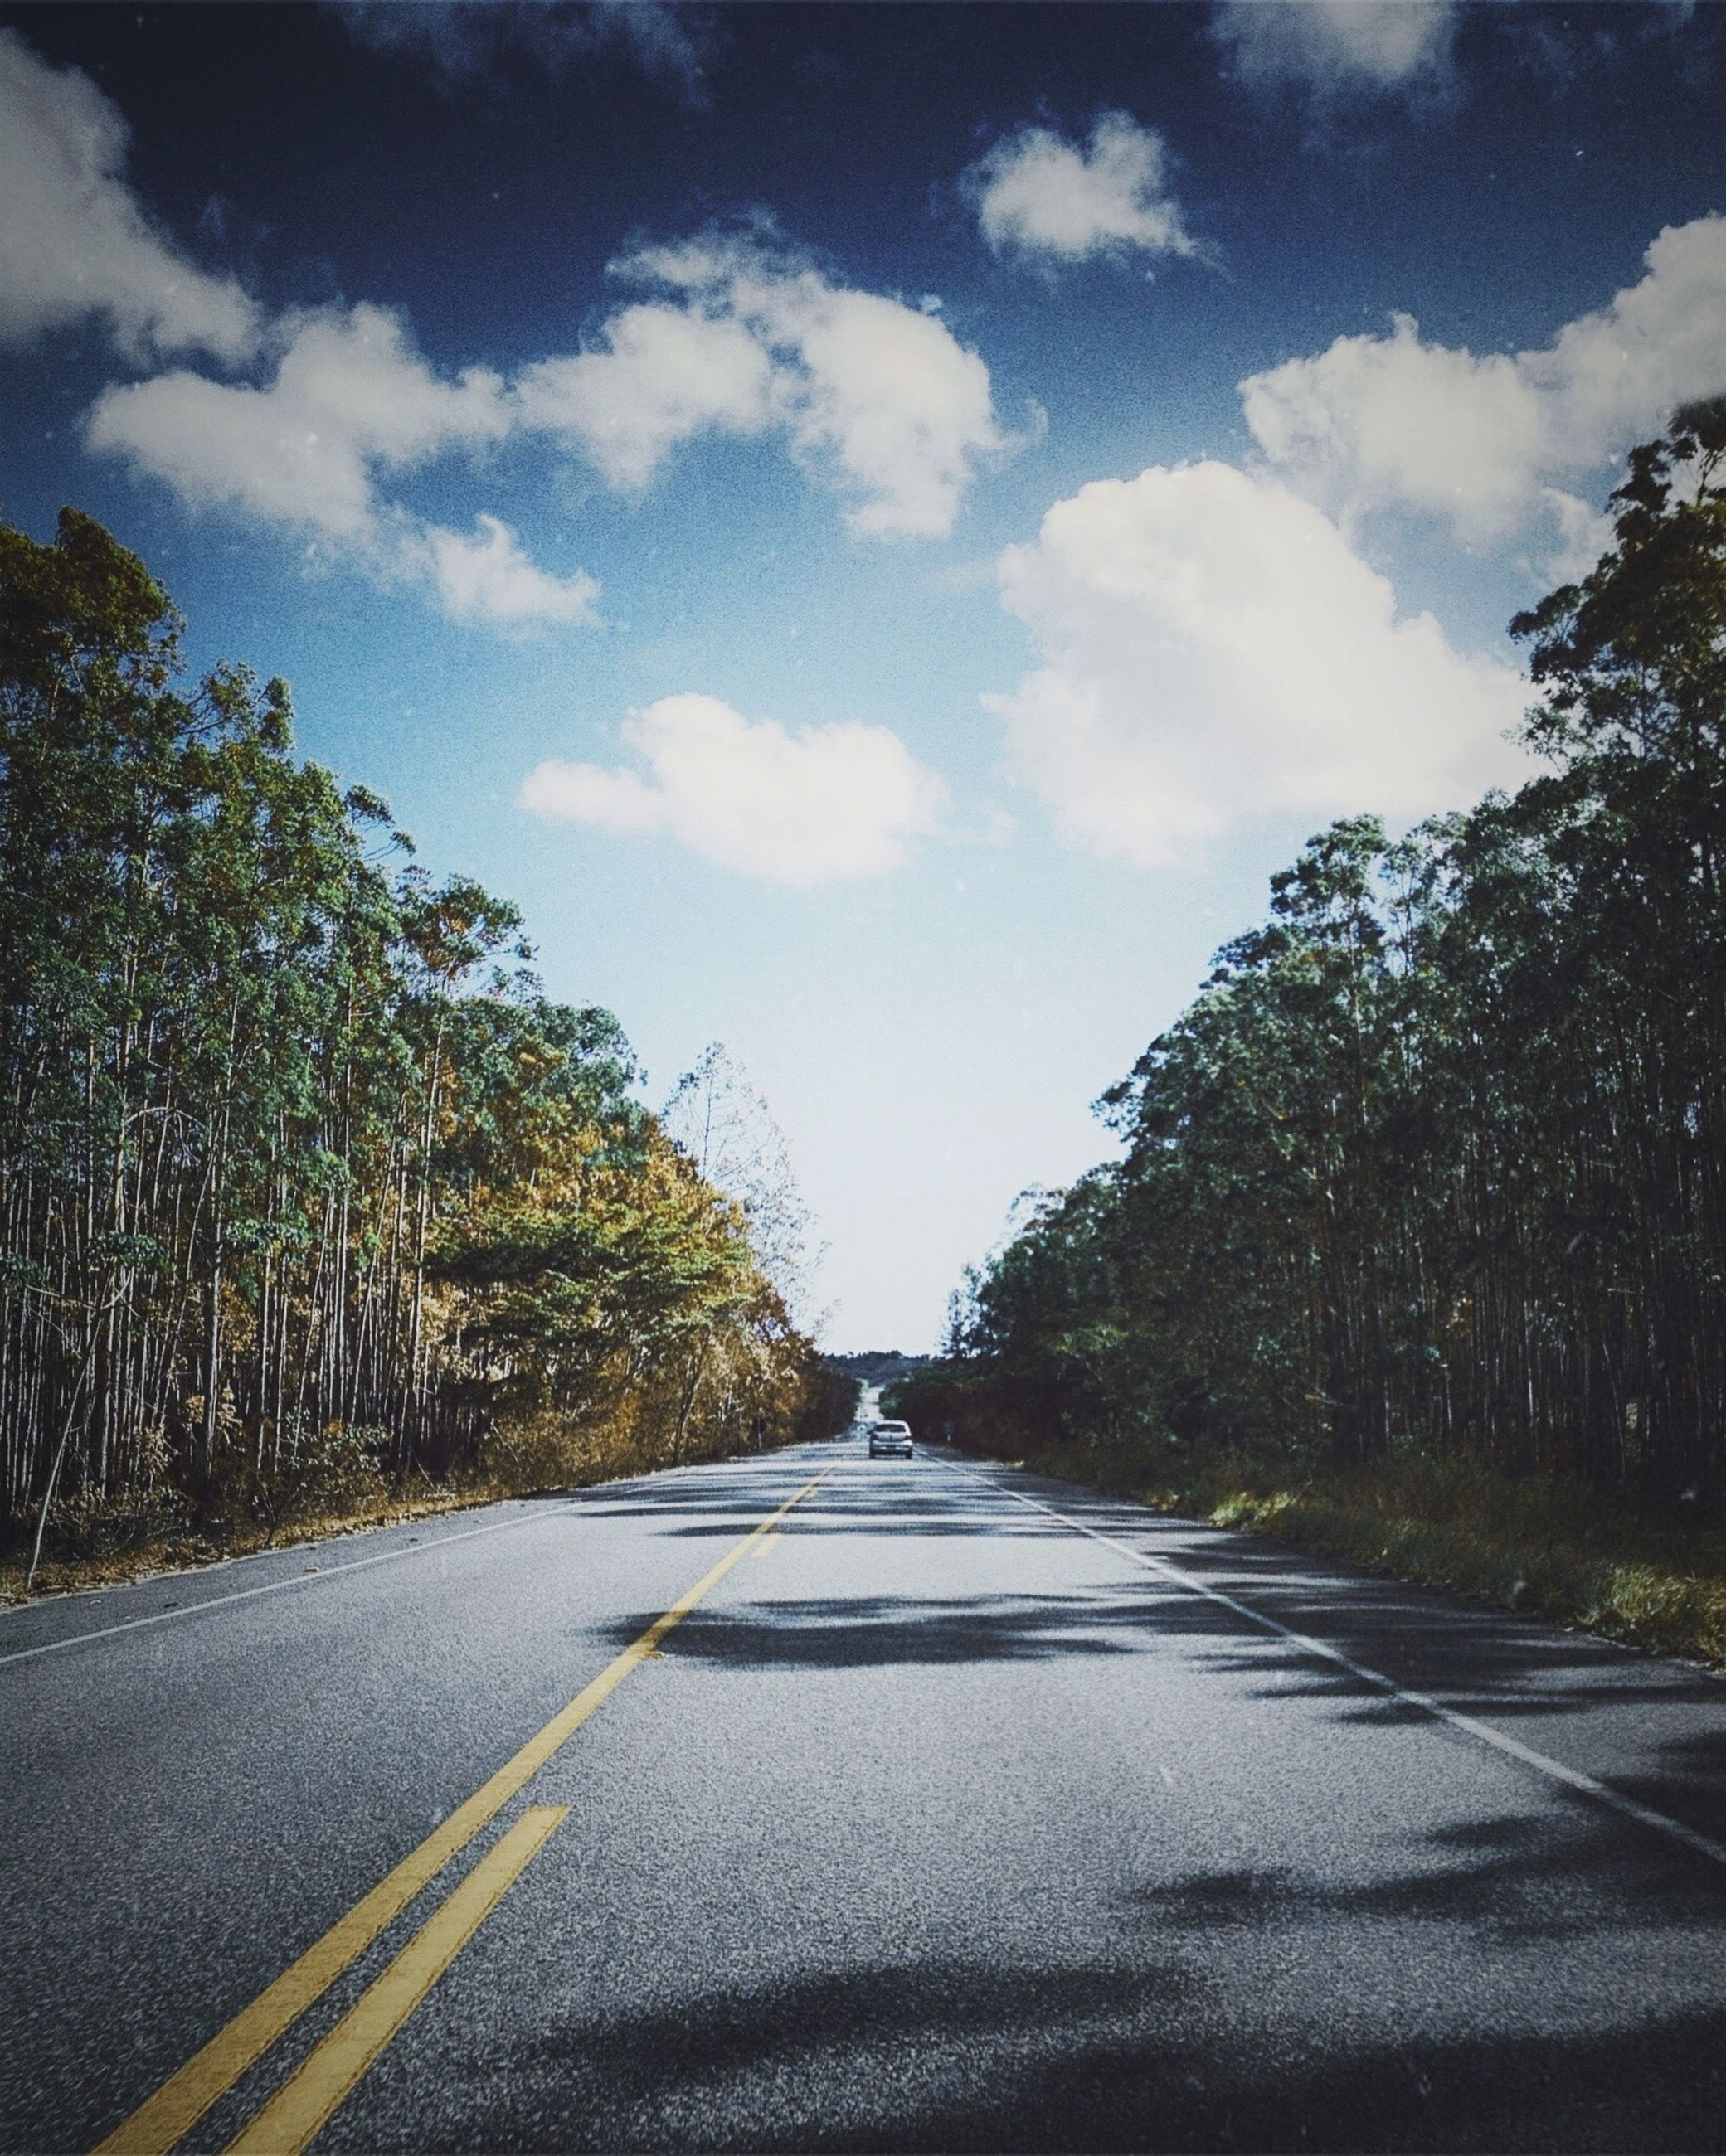 the way forward, road, transportation, road marking, diminishing perspective, vanishing point, tree, sky, asphalt, street, country road, empty road, empty, long, day, double yellow line, outdoors, cloud - sky, no people, nature